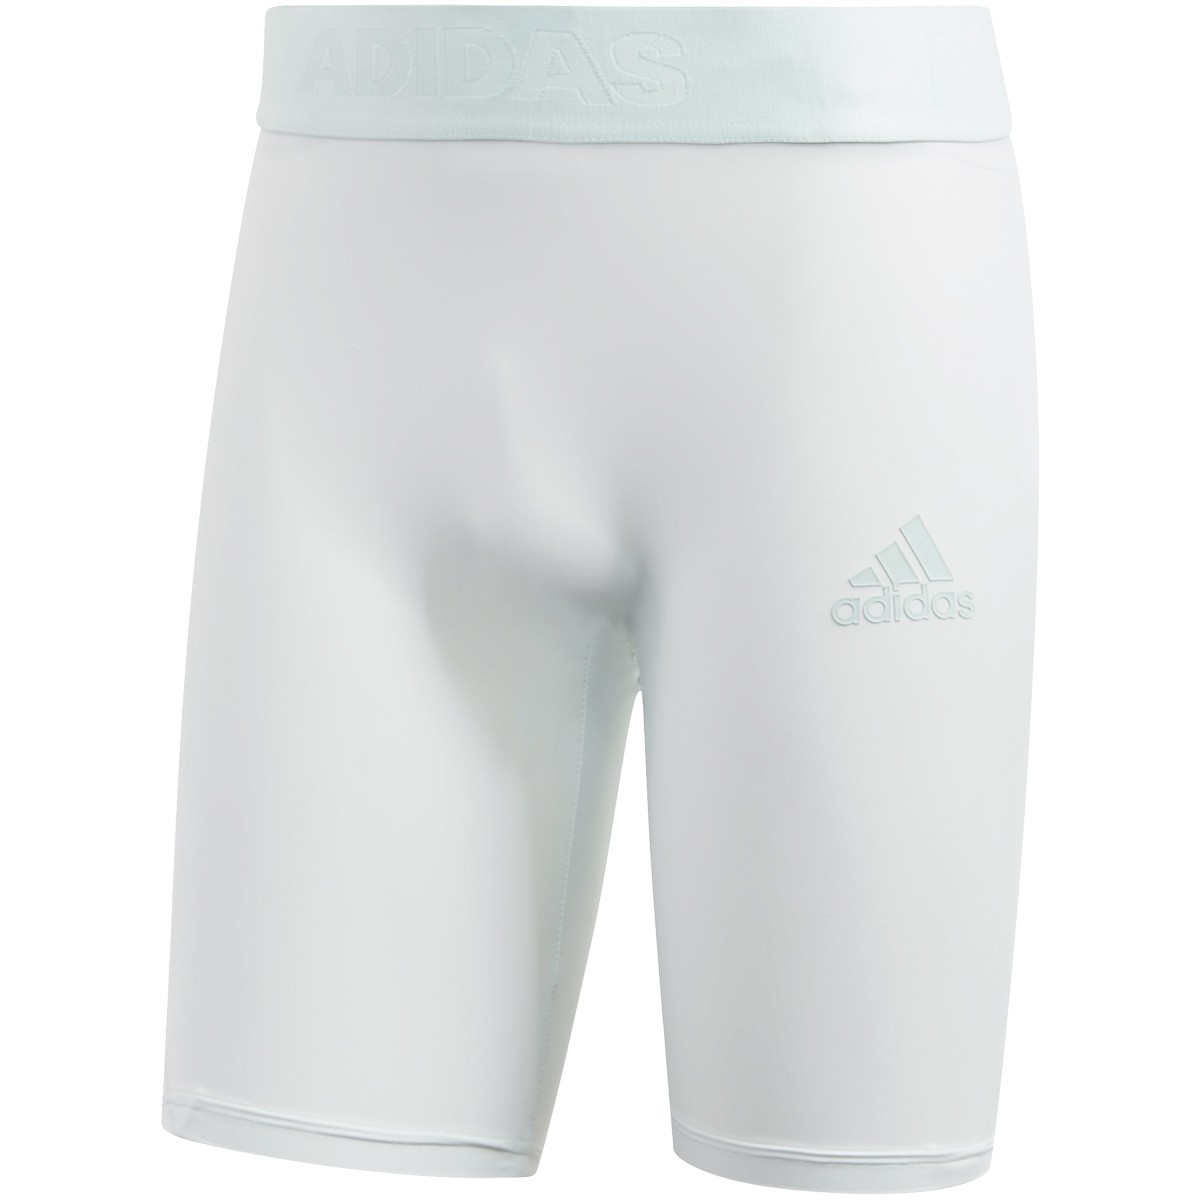 ADIDAS 2 IN 1 AUSTRALIAN OPEN THIEM SHORTS ADIDAS Men's